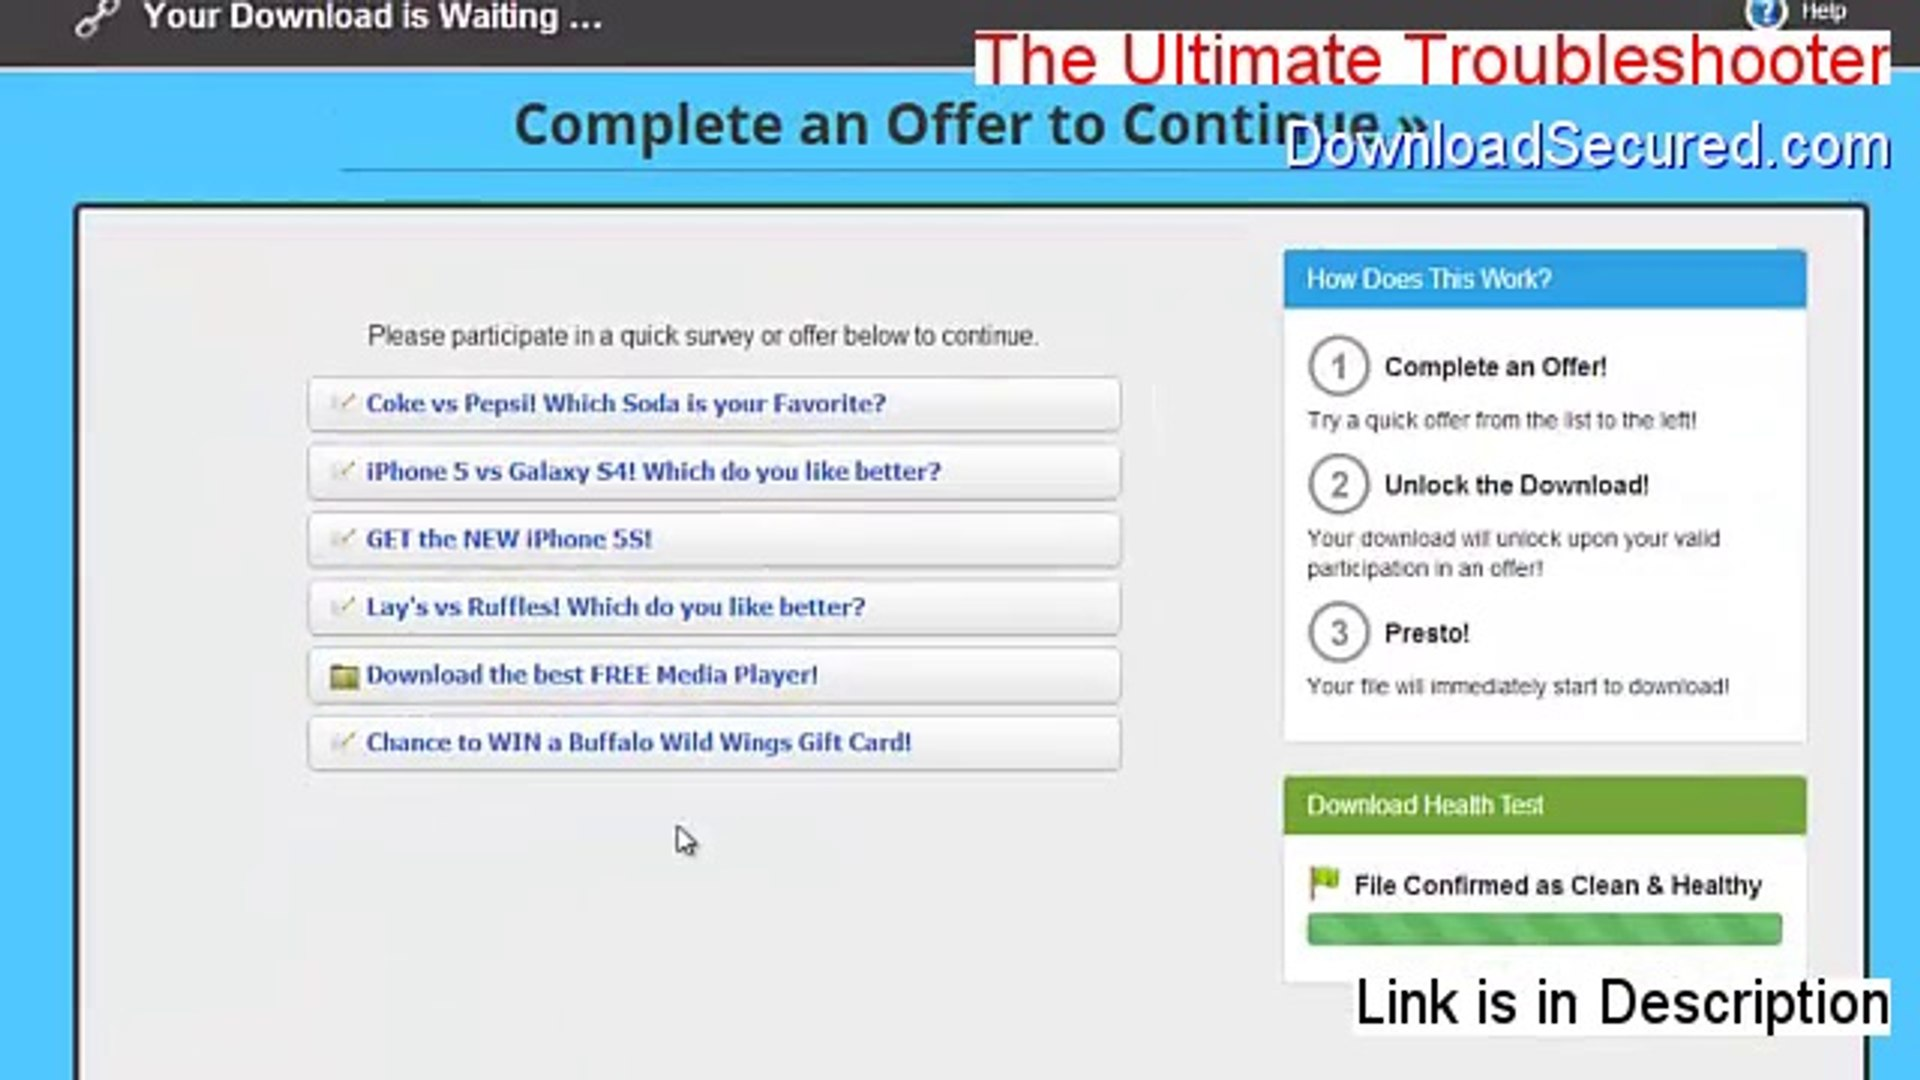 Download The Ultimate Troubleshooter Full Version